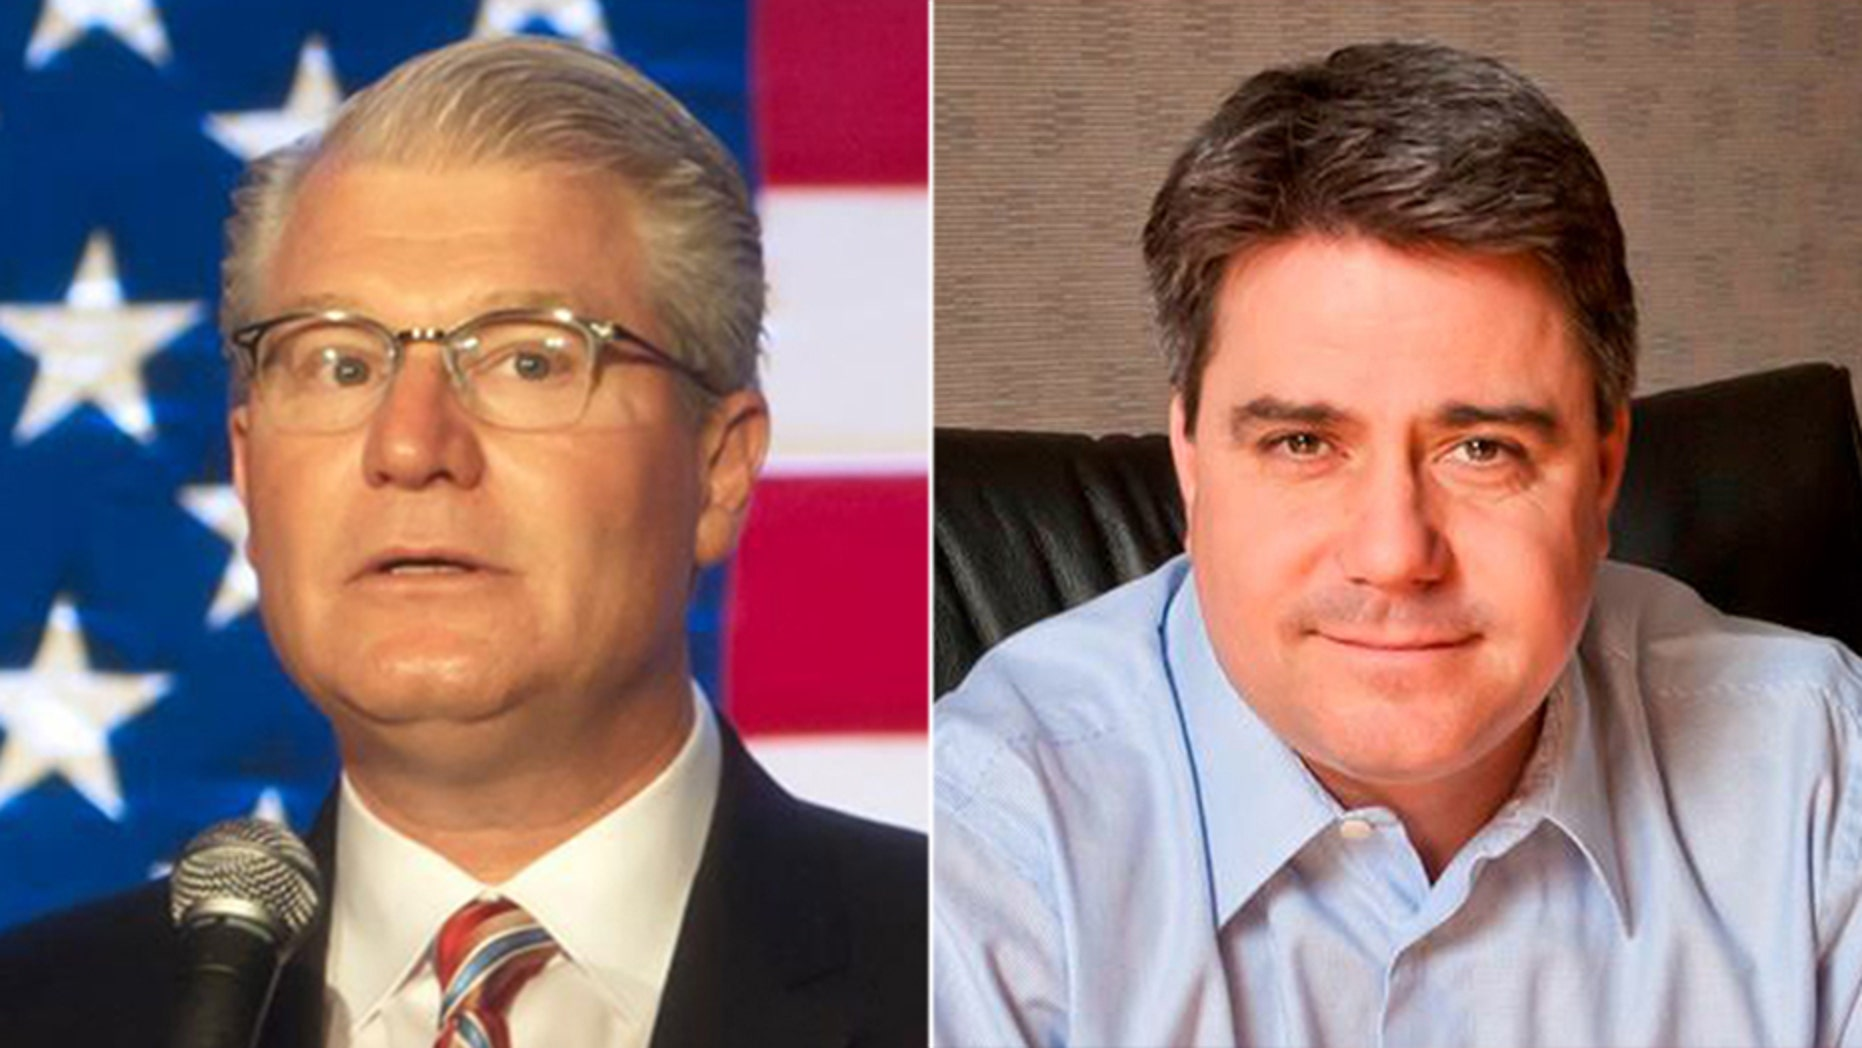 "Local 98 Union Leader John Dougherty, left, and Philadelphia City Councilman Robert Henonwere charged in a massive 11<div class=""e3lan e3lan-in-post1""><script async src=""//pagead2.googlesyndication.com/pagead/js/adsbygoogle.js""></script>